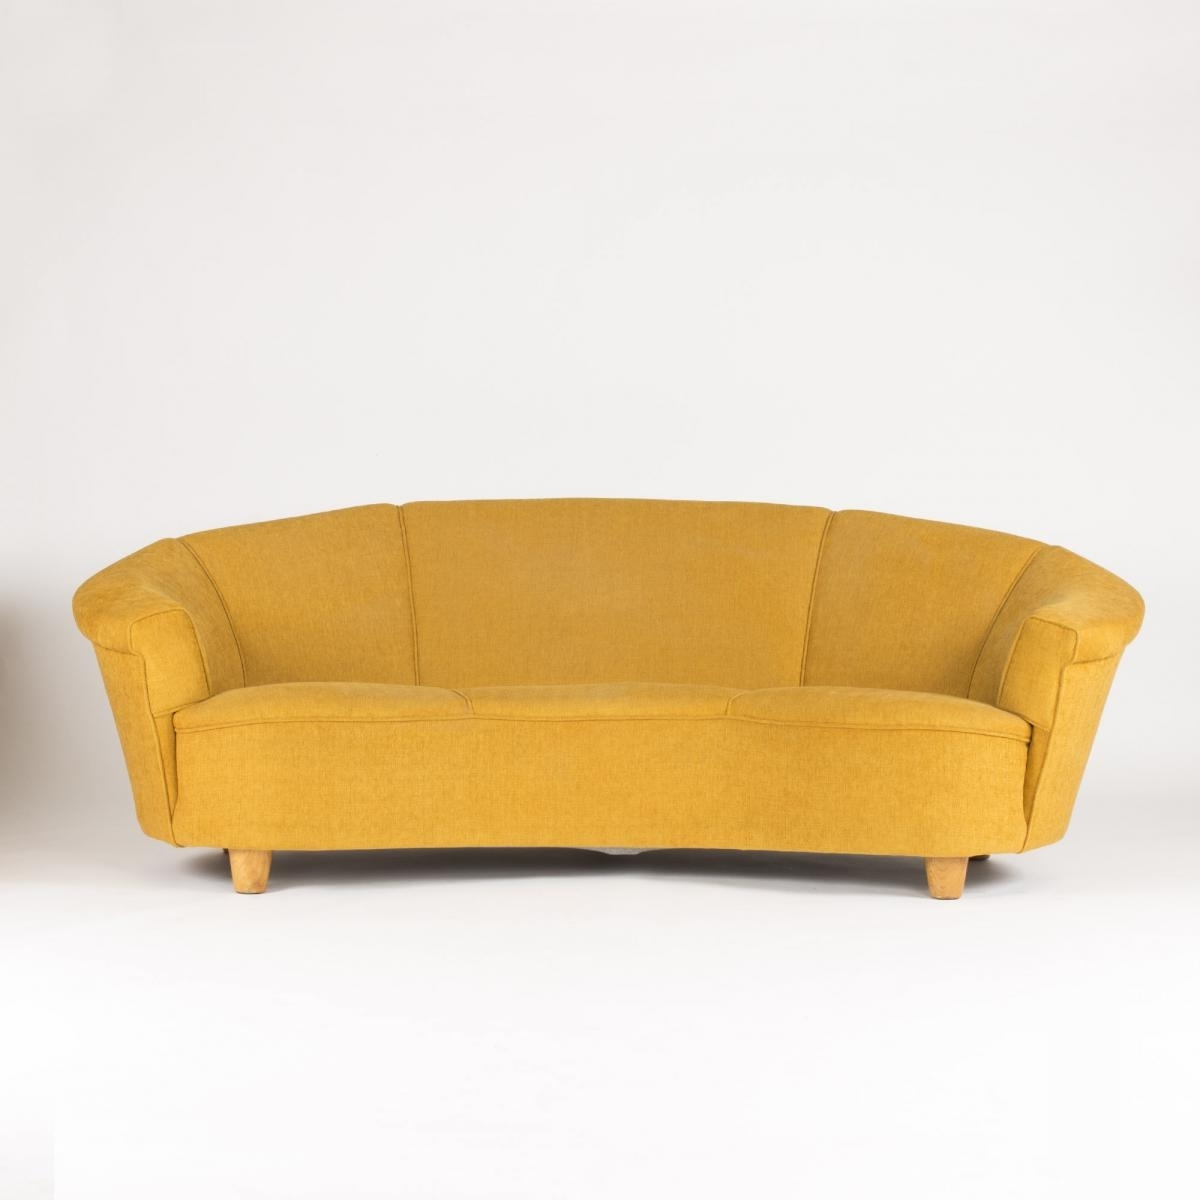 Well Liked Swedish Sofa, 1930S For Sale At Pamono Pertaining To 1930S Sofas (View 20 of 20)